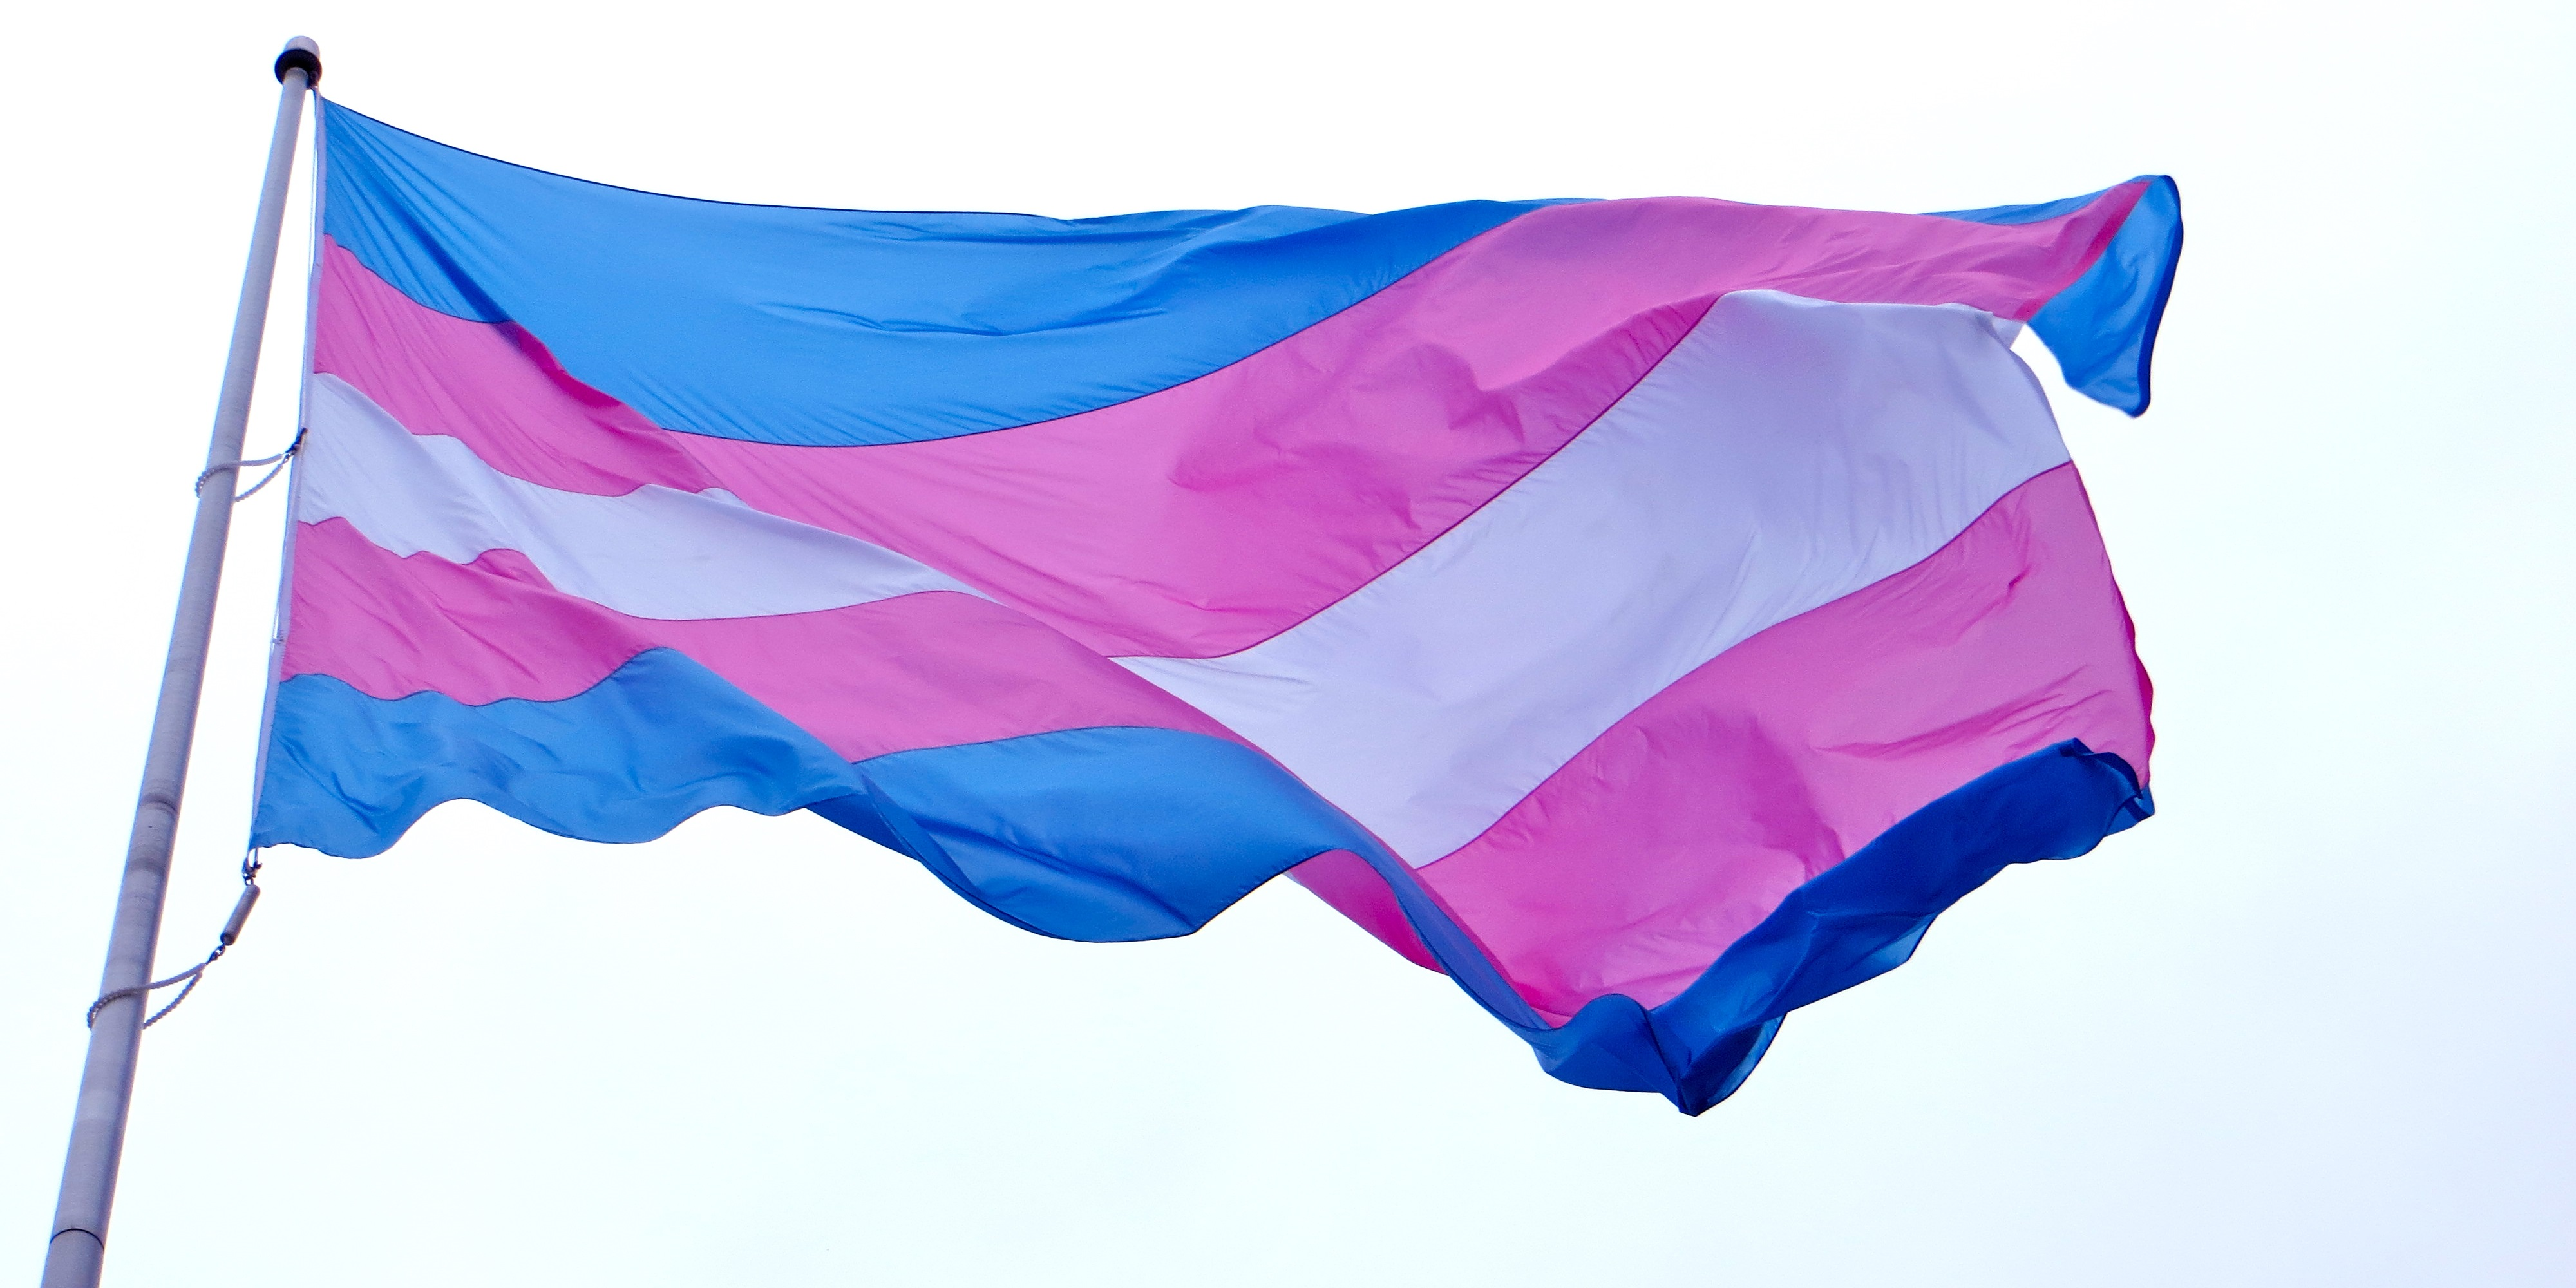 A photograph of the transgender pride flag blowing in the wind. It has white, pink and blue stripes.